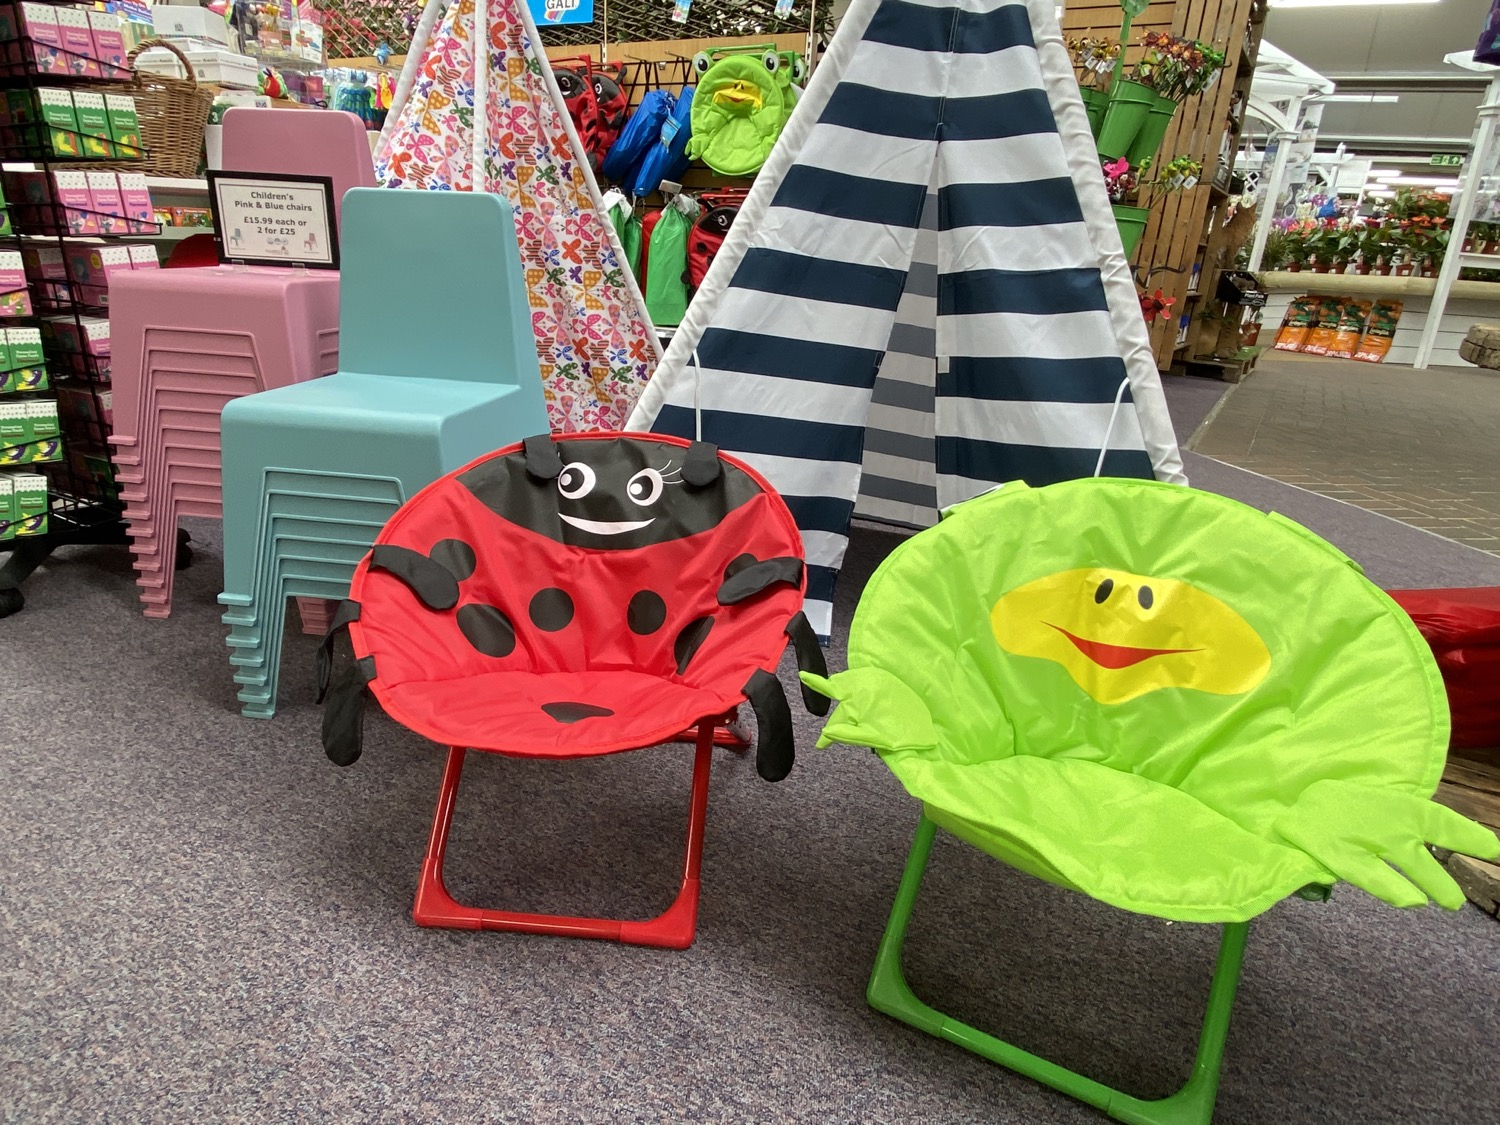 Pink & Blue Chairs - £15.99 eachChildren's Teepee's - £34.99 & Moon Chairs - £16.99